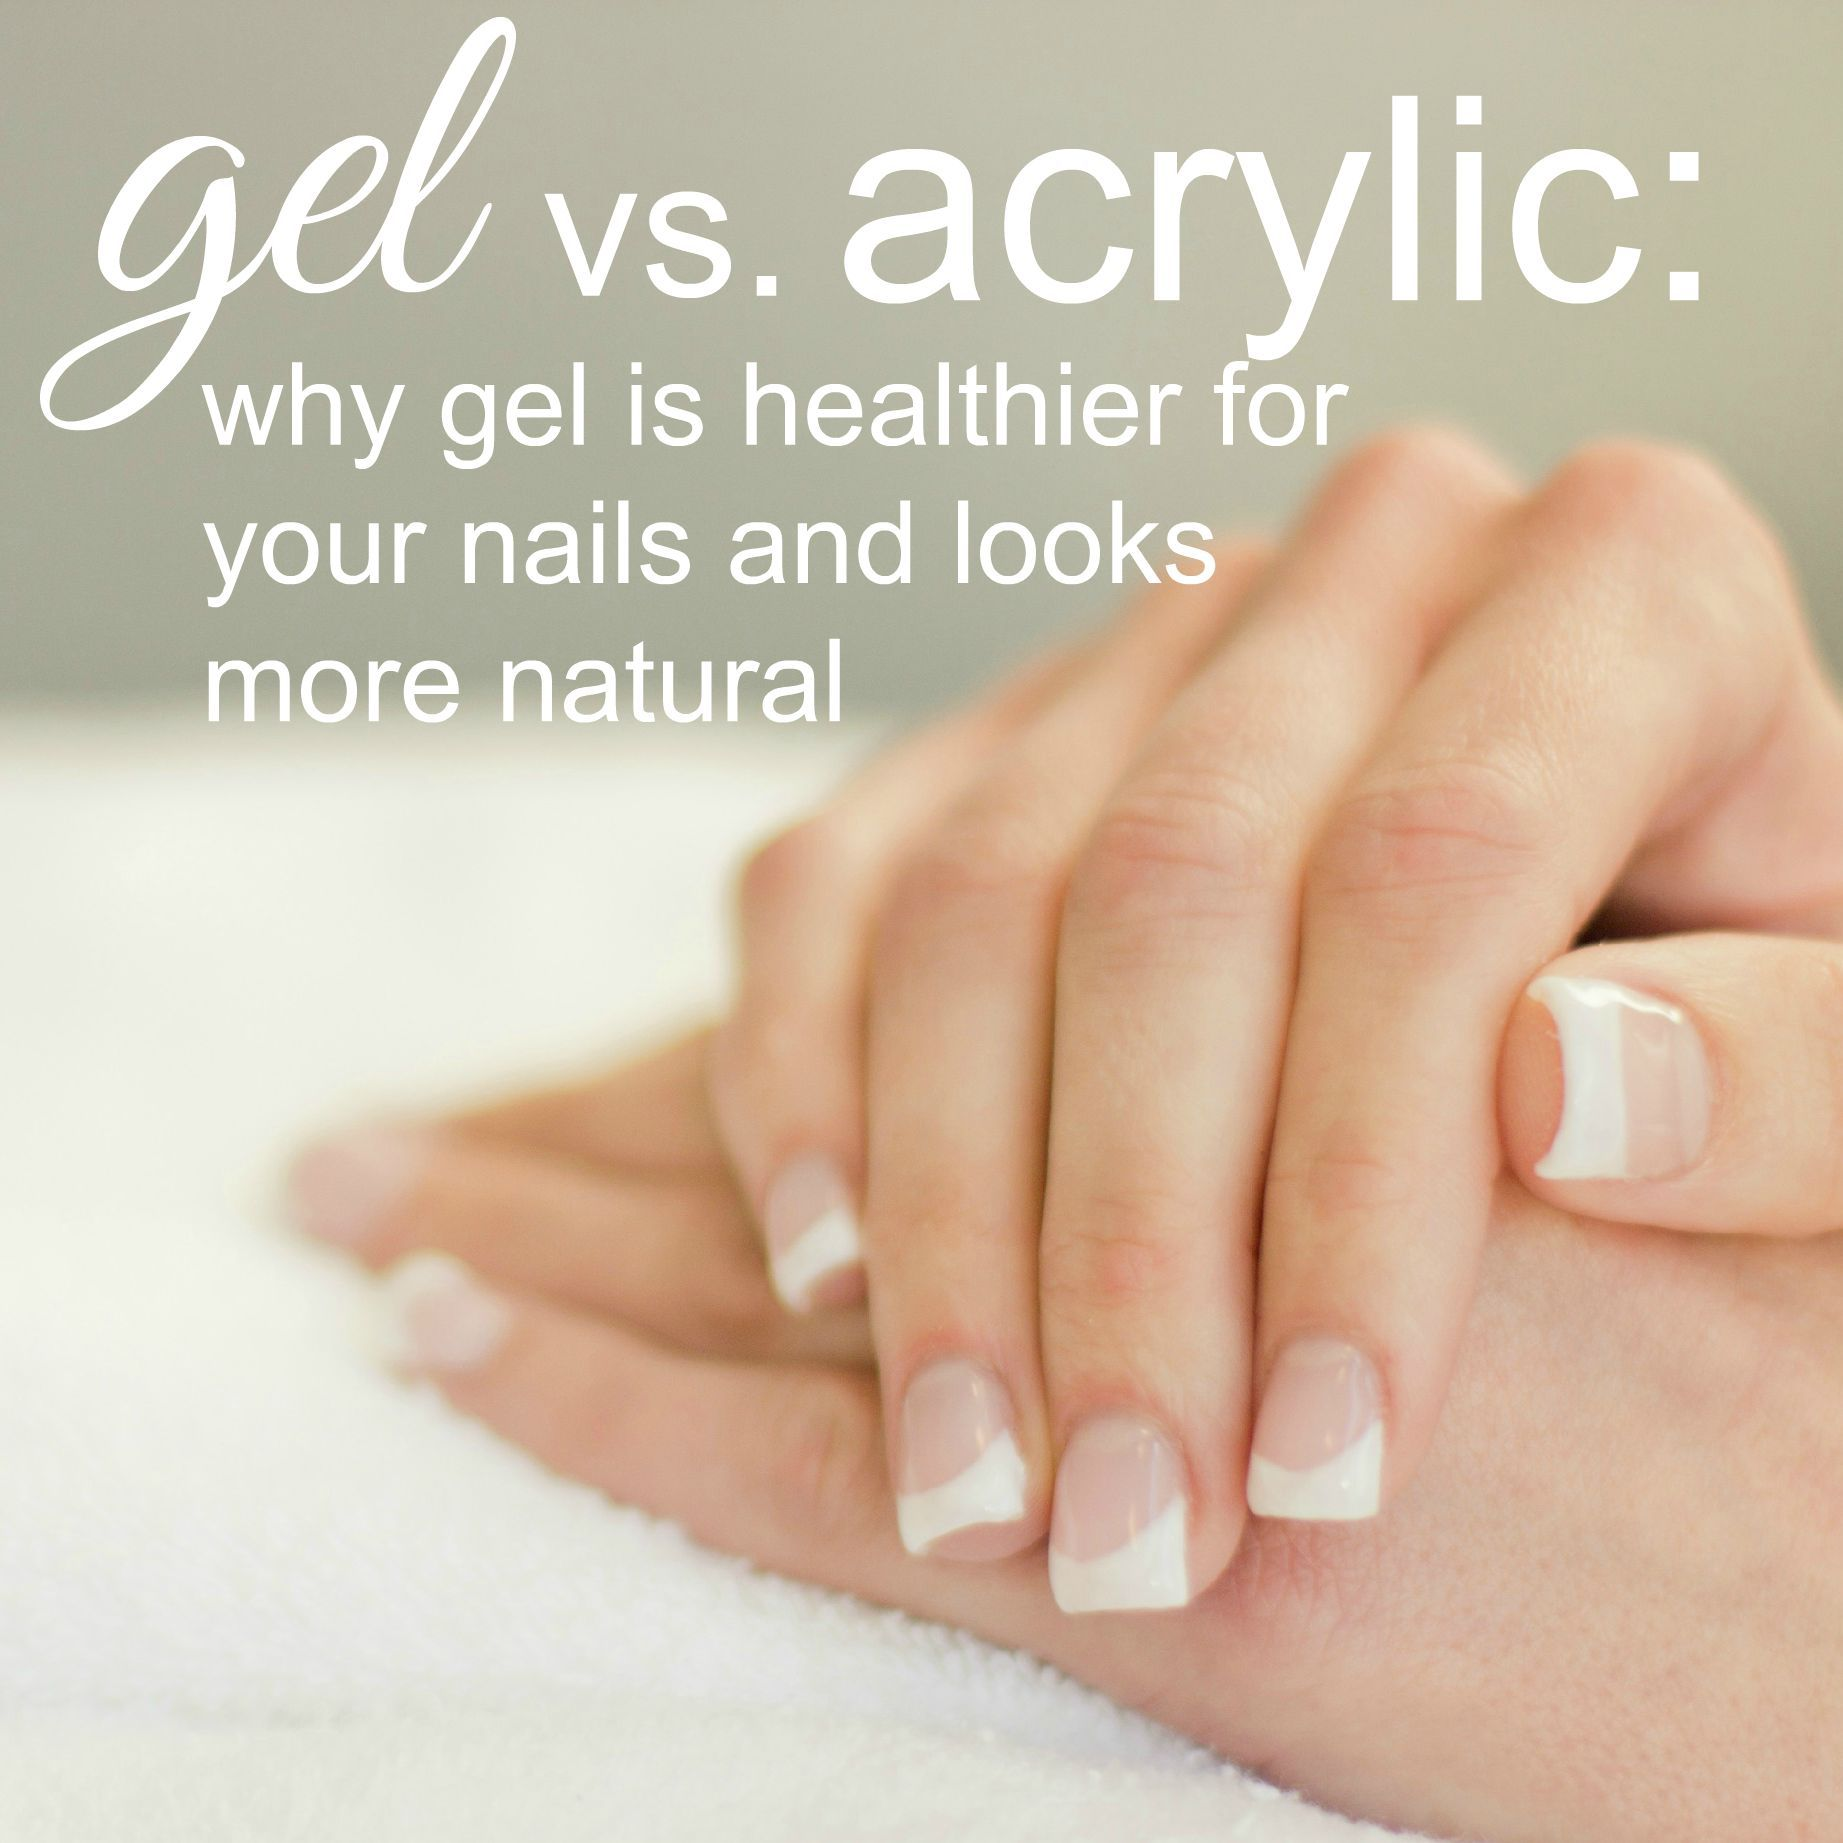 Benefits Of Hard Gel Enhancements Gel Vs Acrylic Nails Gel Nails Hard Gel